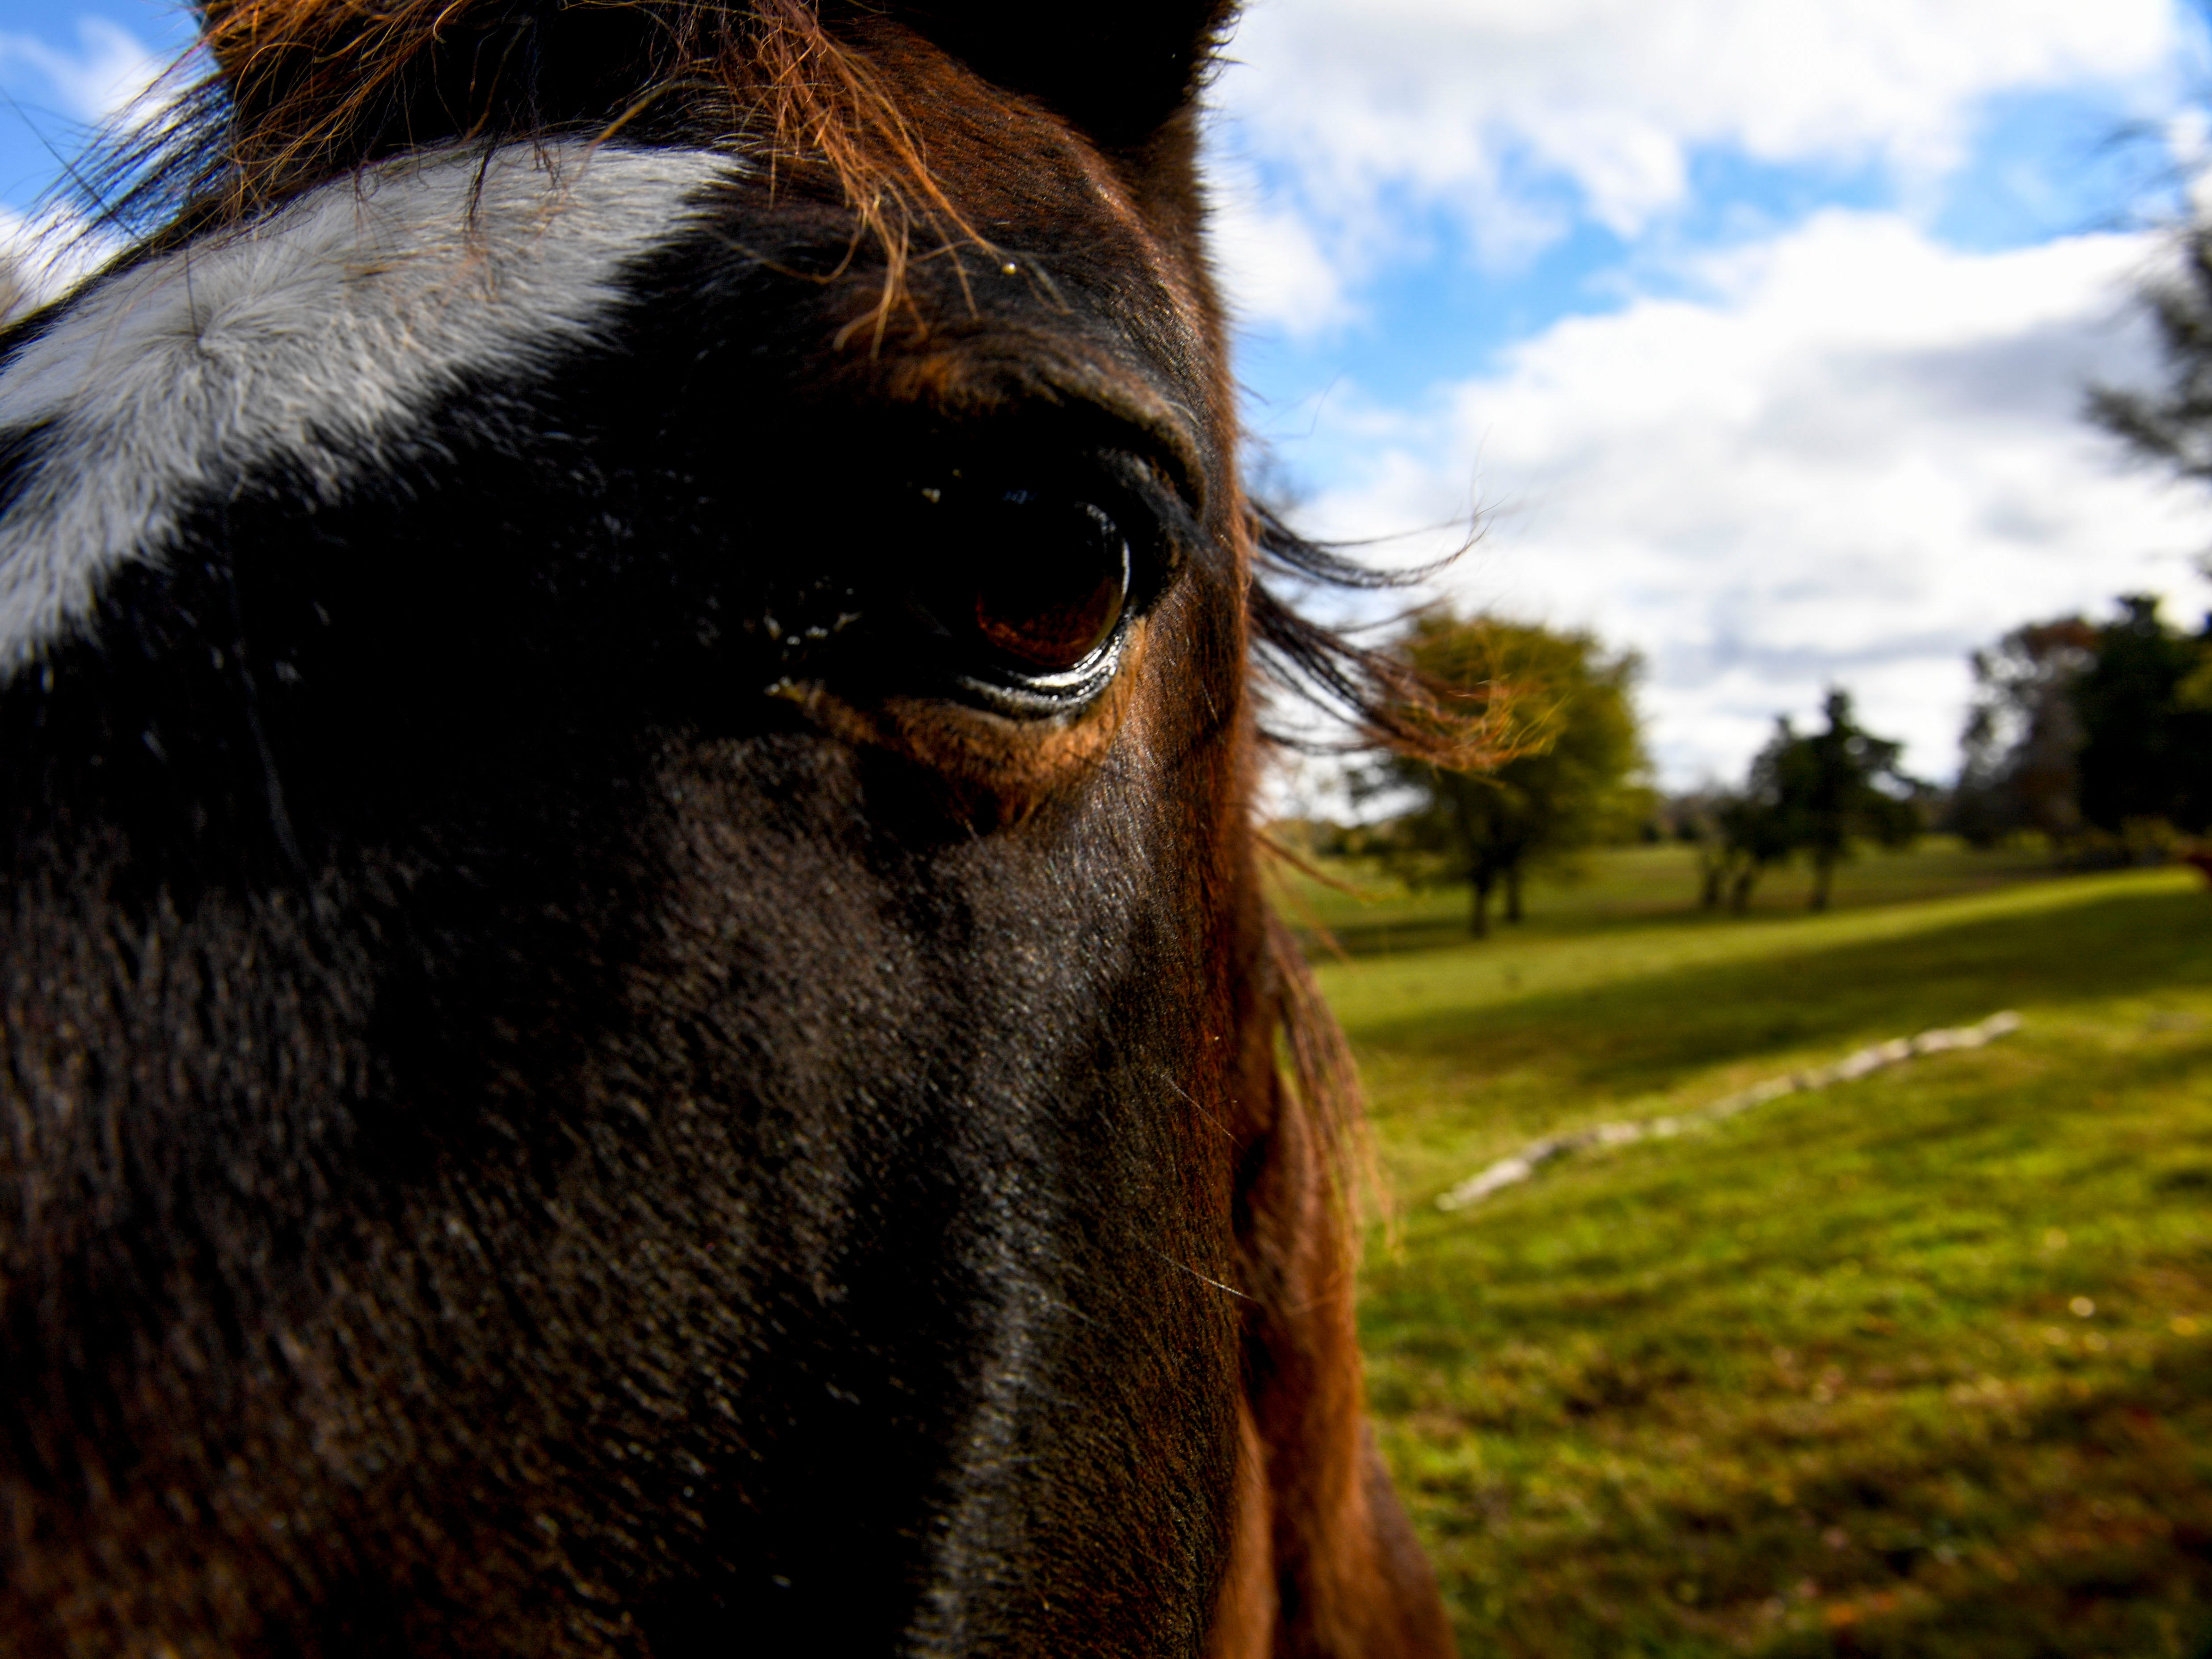 Geronimo leans in while visiting Valeria Pitoni at the edge of the pasture at Stillwaters Farm in Henderson, Tenn., on Monday, Nov. 5, 2018.